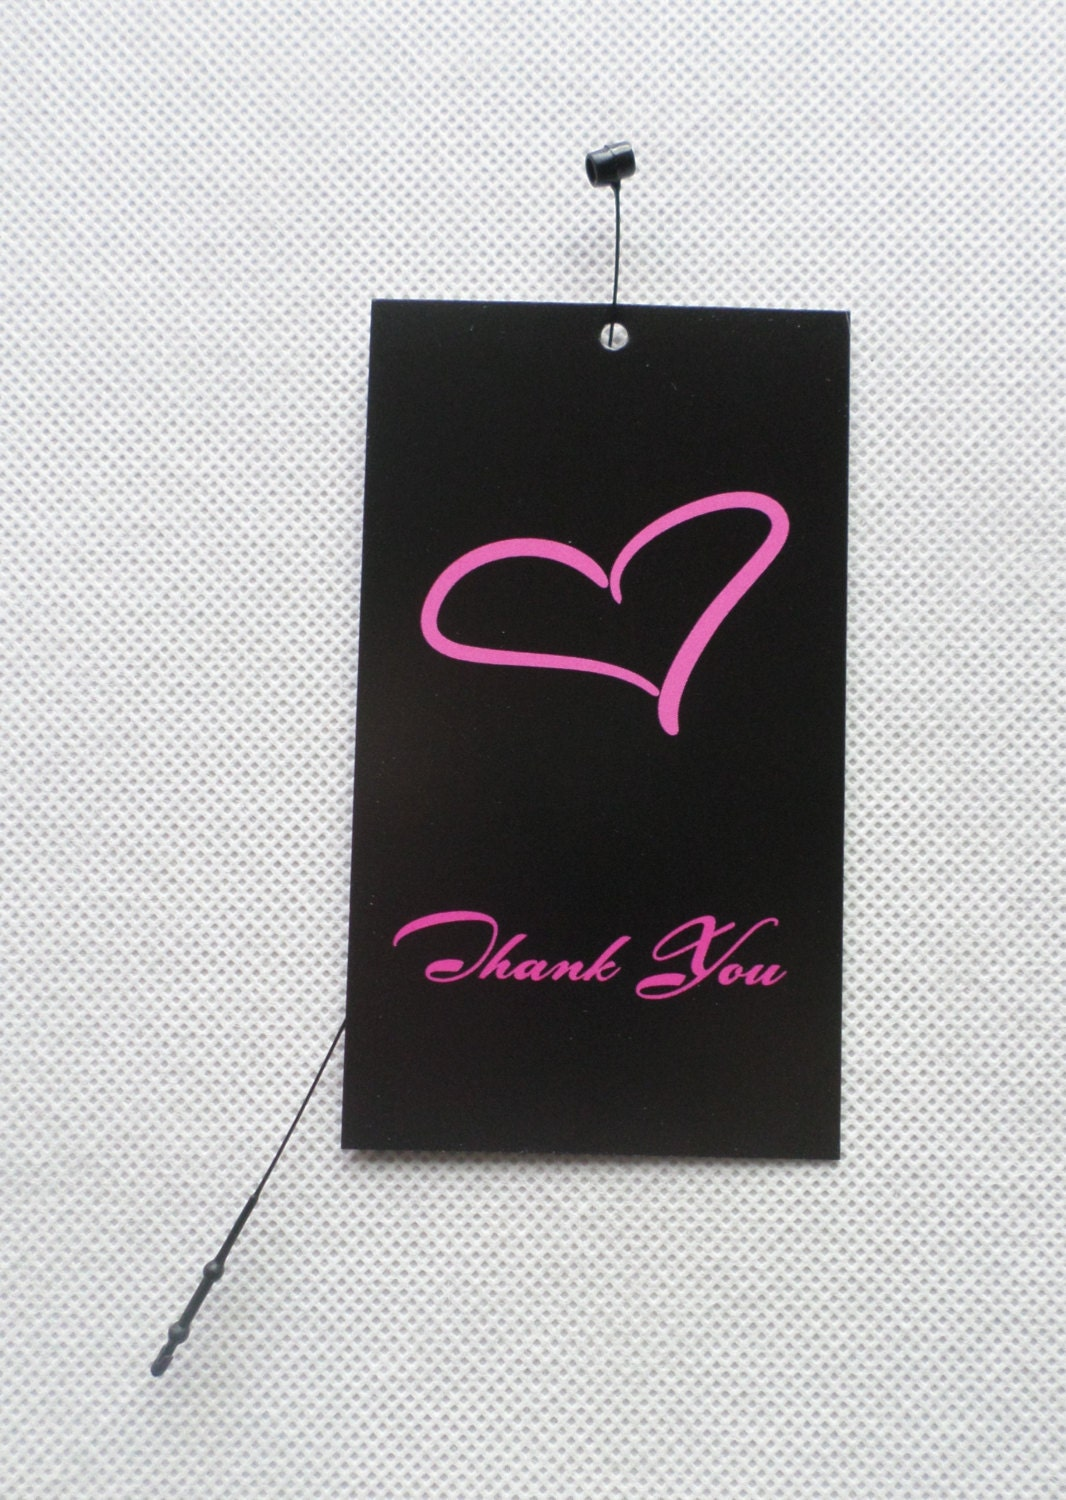 Wholesale Custom Printed Clothes Price Tags For Clothing ... |Price Tags For Clothing